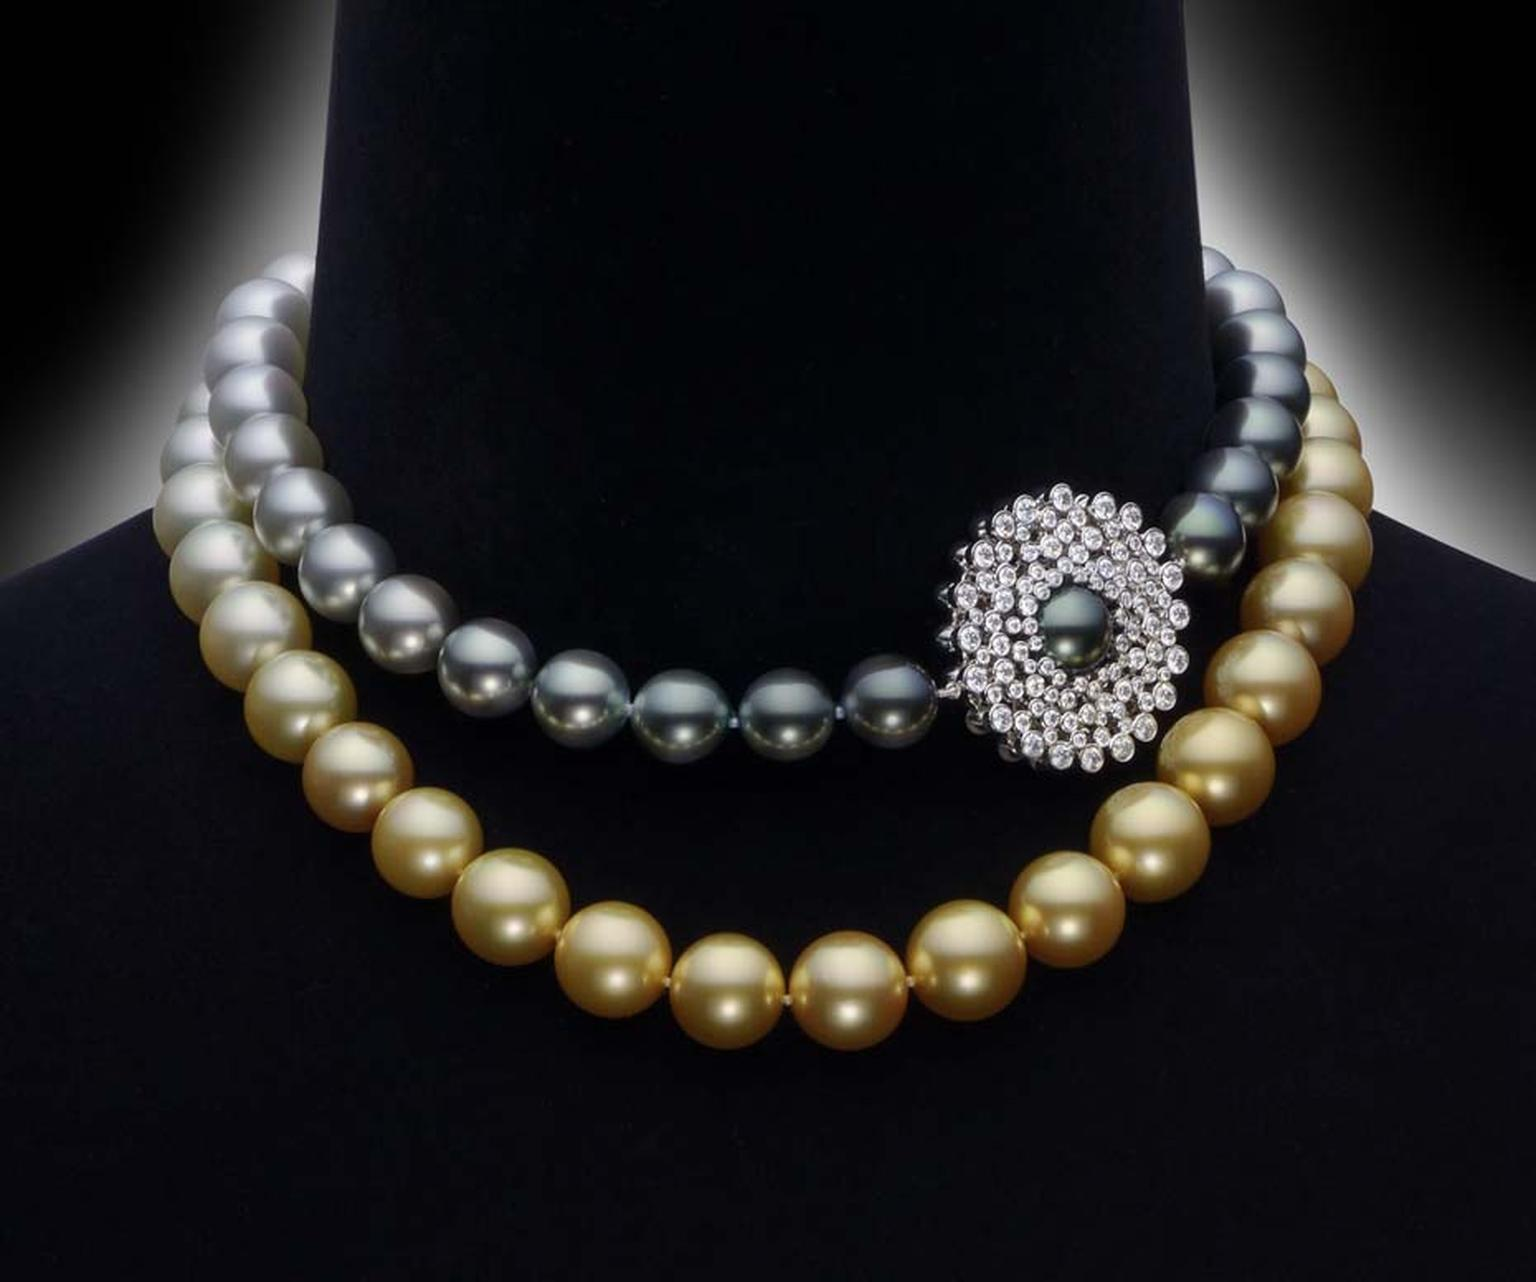 Mikimoto's Sun & Clouds necklace is designed so that it can be doubled up as a choker or worn sautoir-style